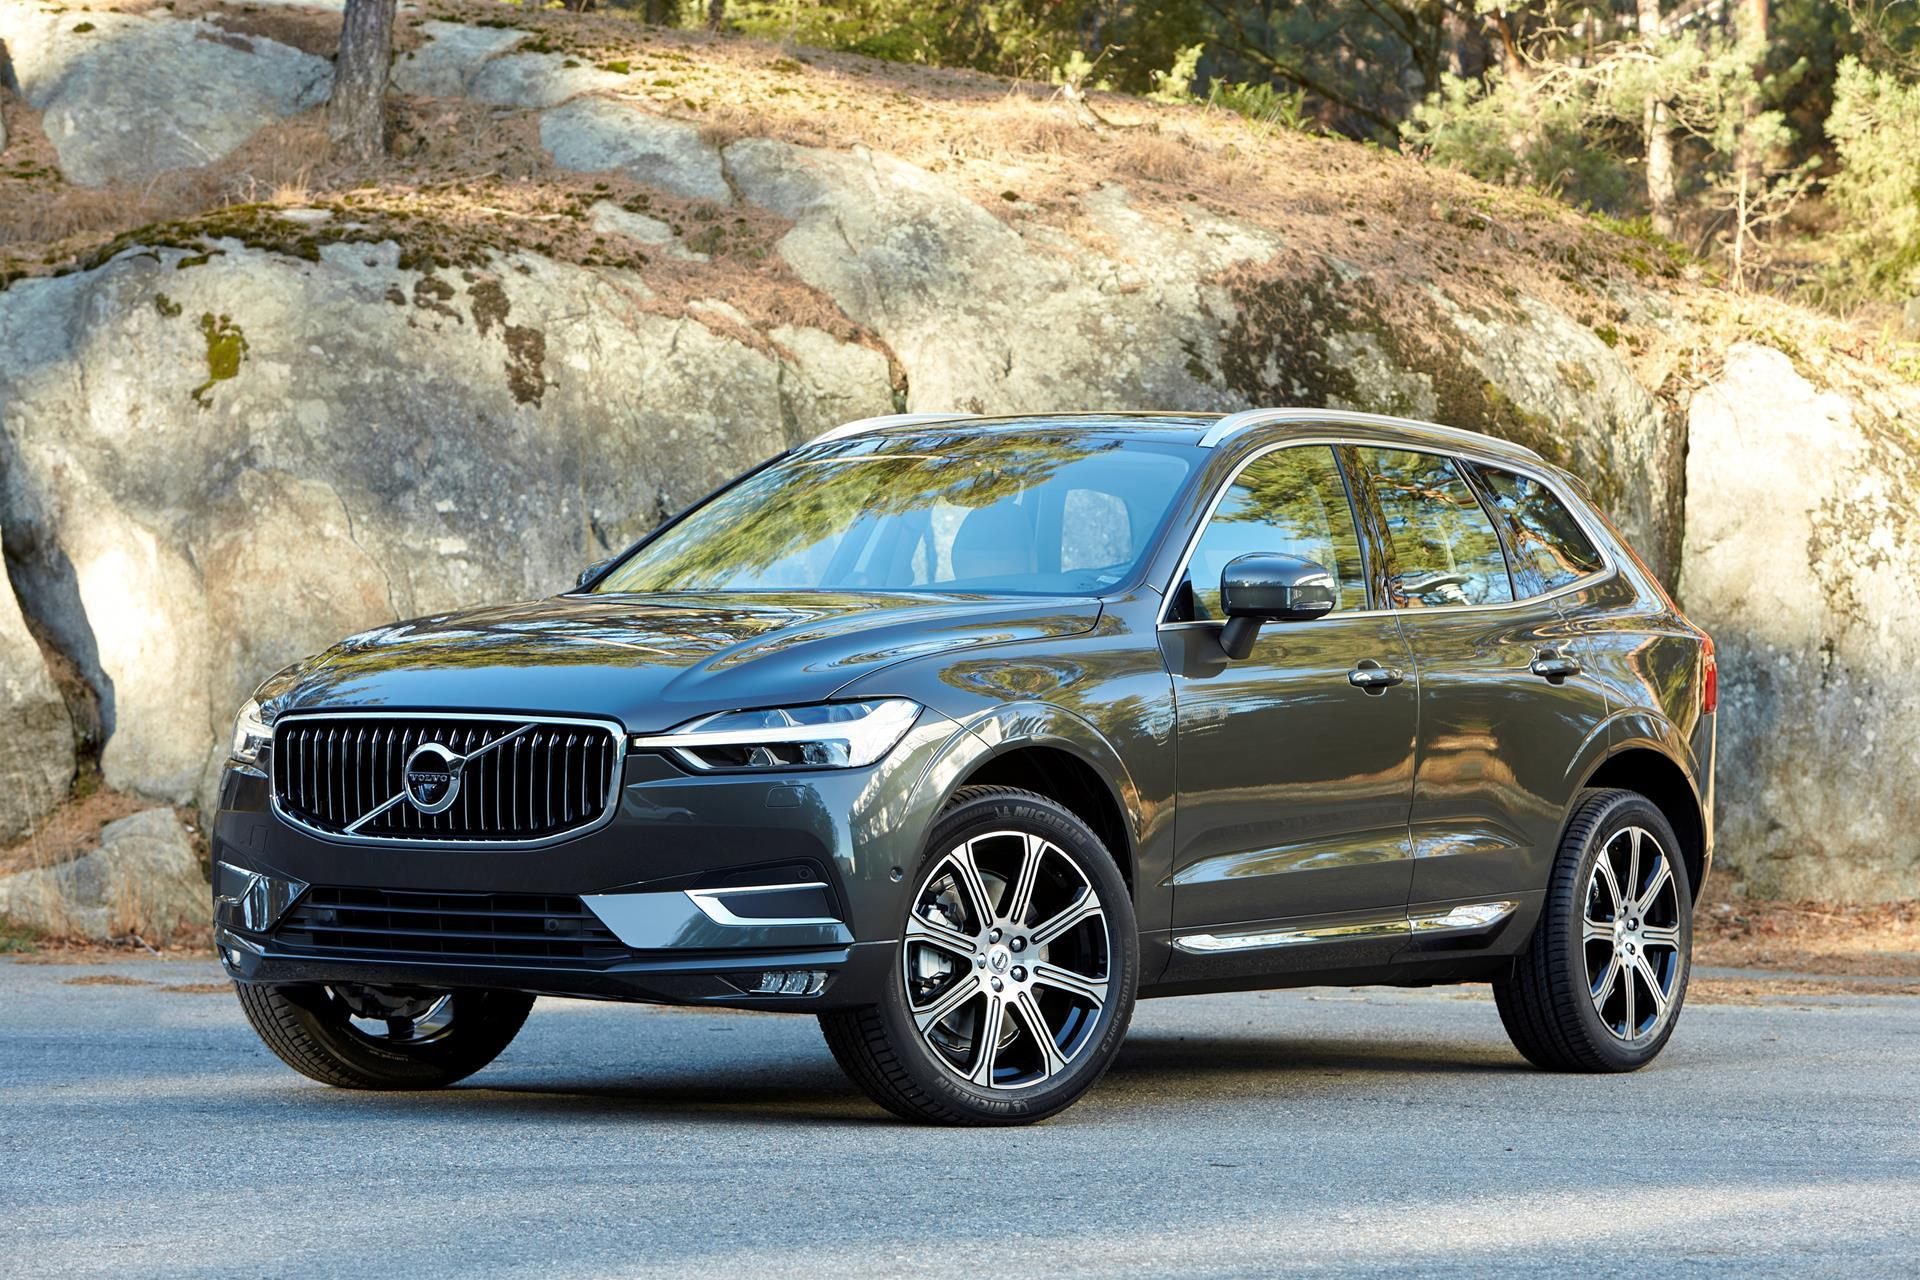 drive offer intends suv of blog every blending will volvo versions in electrified variant to hybrid a best addition first it sells soon model luxury carfax the plug exterior supply compact new crossover